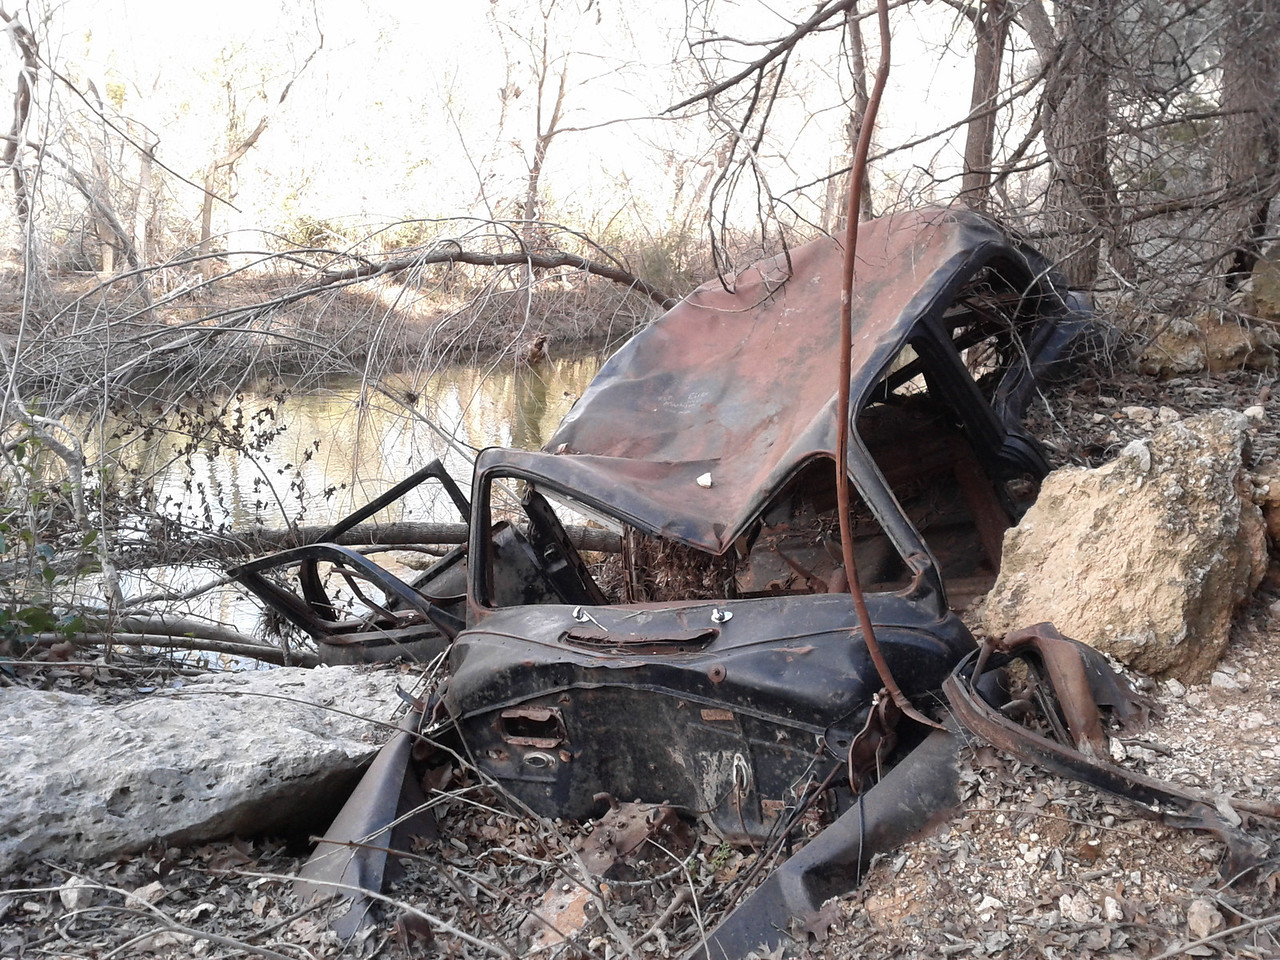 Wonder what's the story with this old wreck we found on Bull Creek?